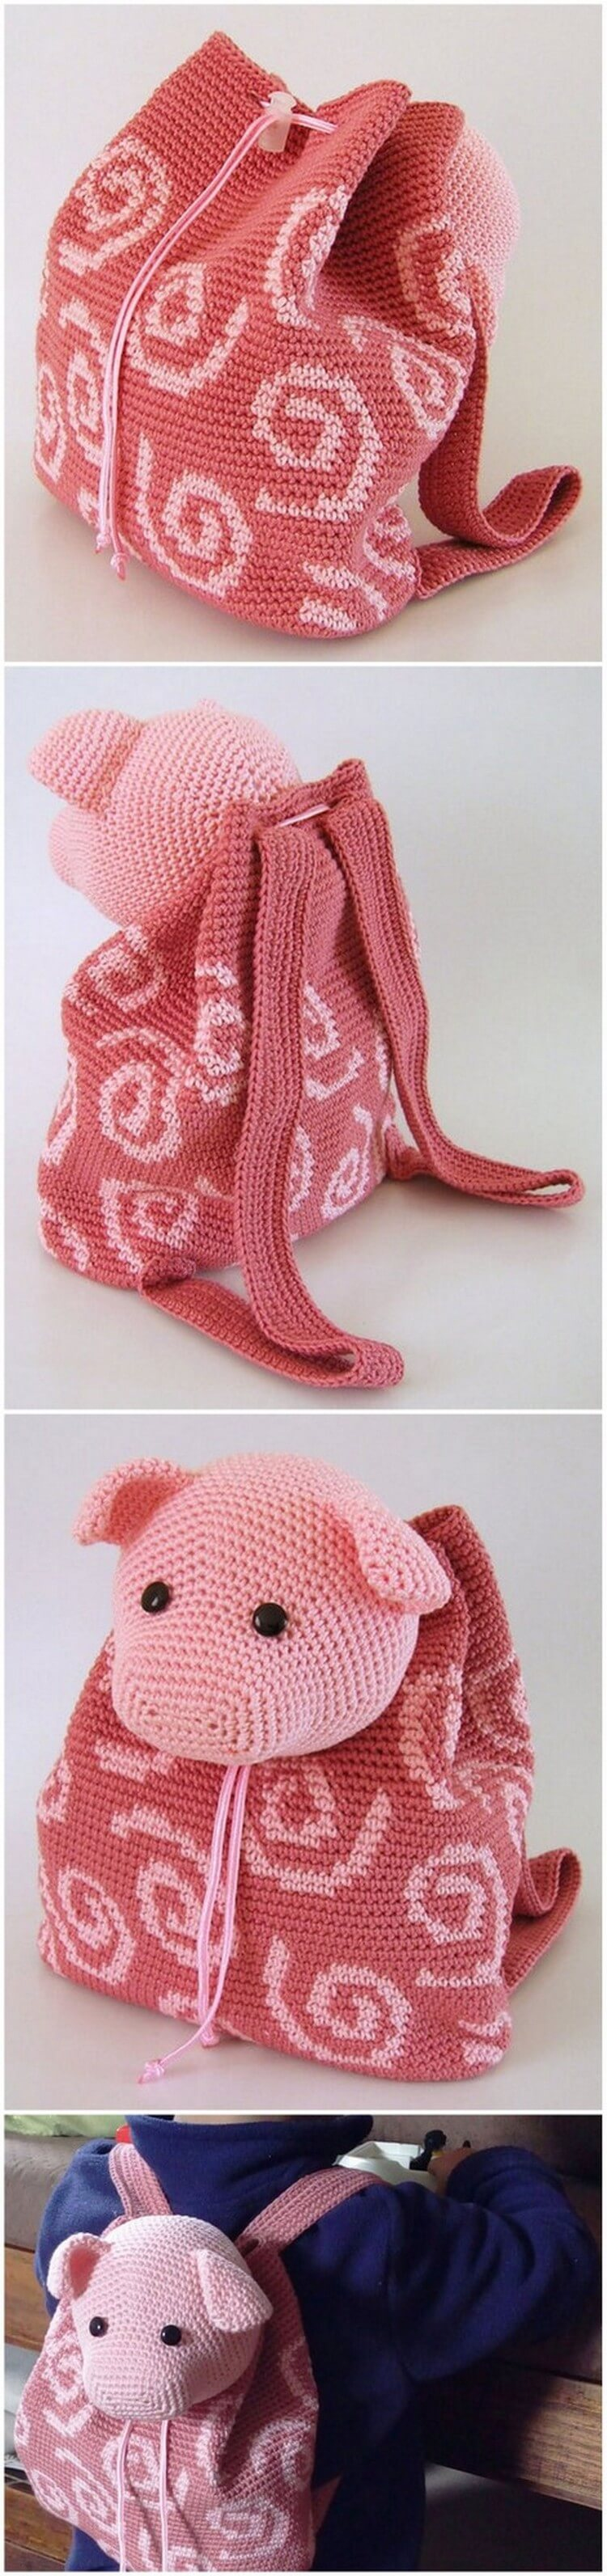 Crochet Backpack Pattern (64)